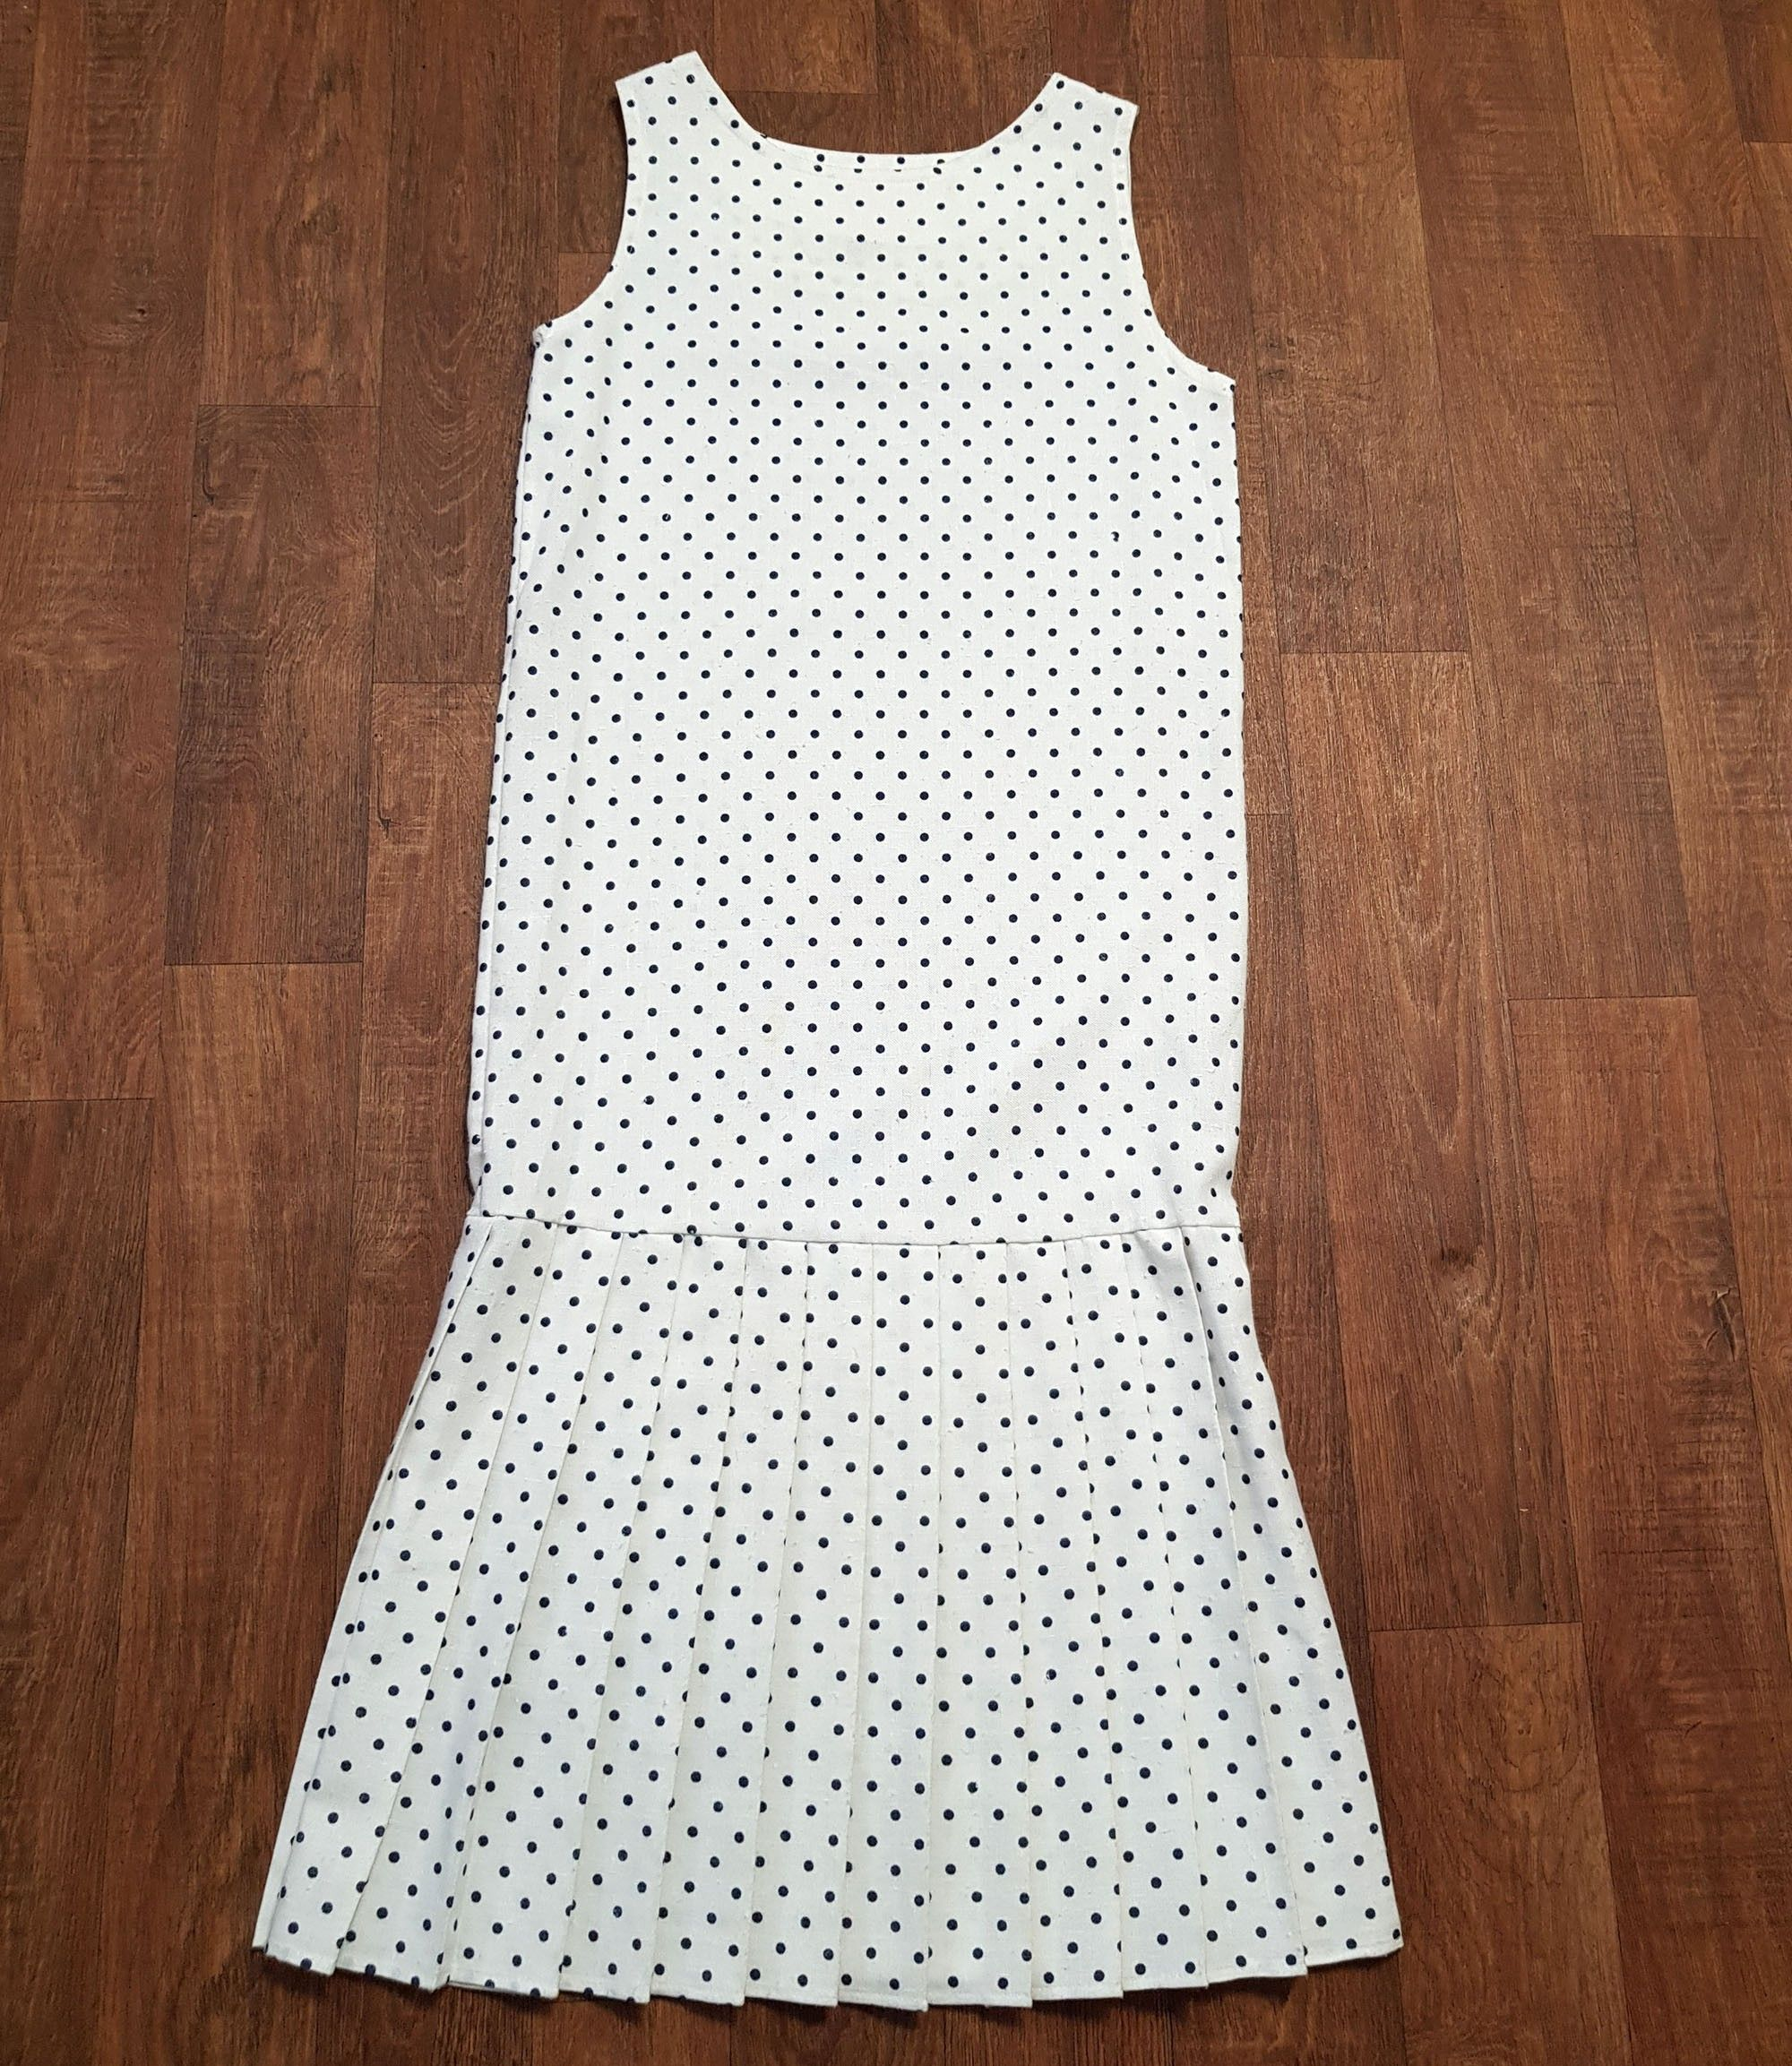 70s does 20s Vintage White Polka Dot Dress UK Size 10